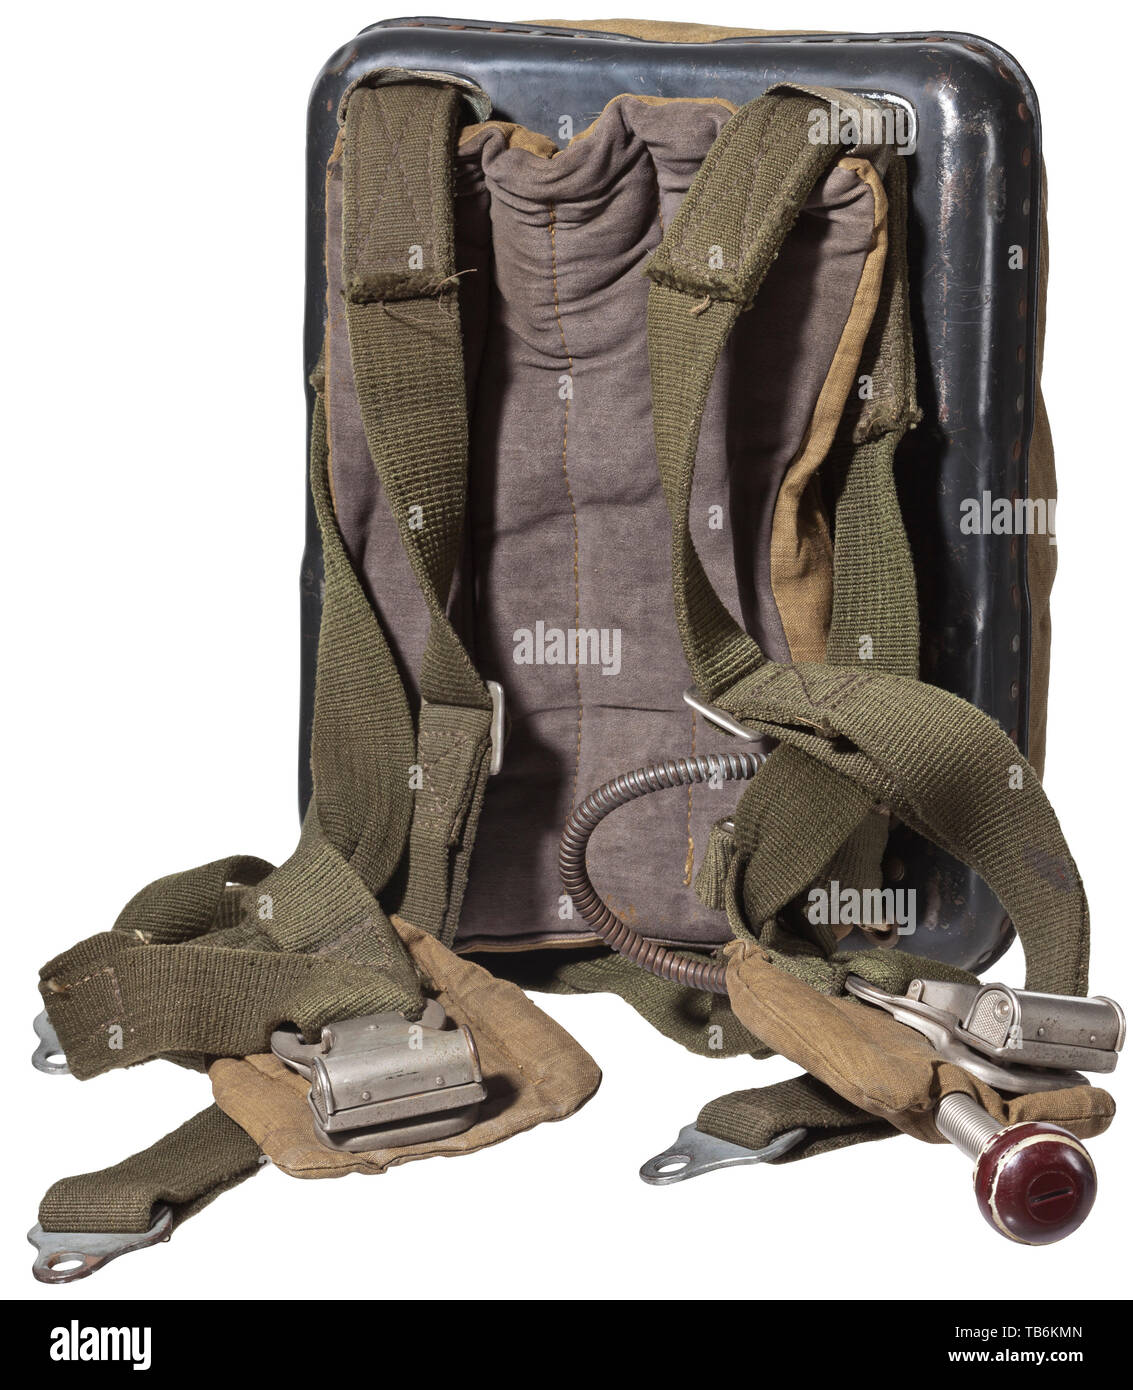 """A back parachute model RH-28, with bag, Packed, with many extension belts and other elements. Type specification plate with request sign """"402008"""" and inscription """"Rückenfallschirm"""", rip cord with grip, also """"Gerät-Nr. 10-409-A1"""", serial number """"10?8512"""". Includes green linen storage bag with patent press buttons """"DRP - Zieh hier"""" and stamp """"FL 3.1220"""", two handles. Not checked for functionality and completeness, parts partially stamped and labelled. Cf. auction 67, lot no. 7173 or auction 64, lot no. 7462. Parachutes of this type were used for the Me-262 jet fighter. Rare. , Editorial-Use-Only Stock Photo"""